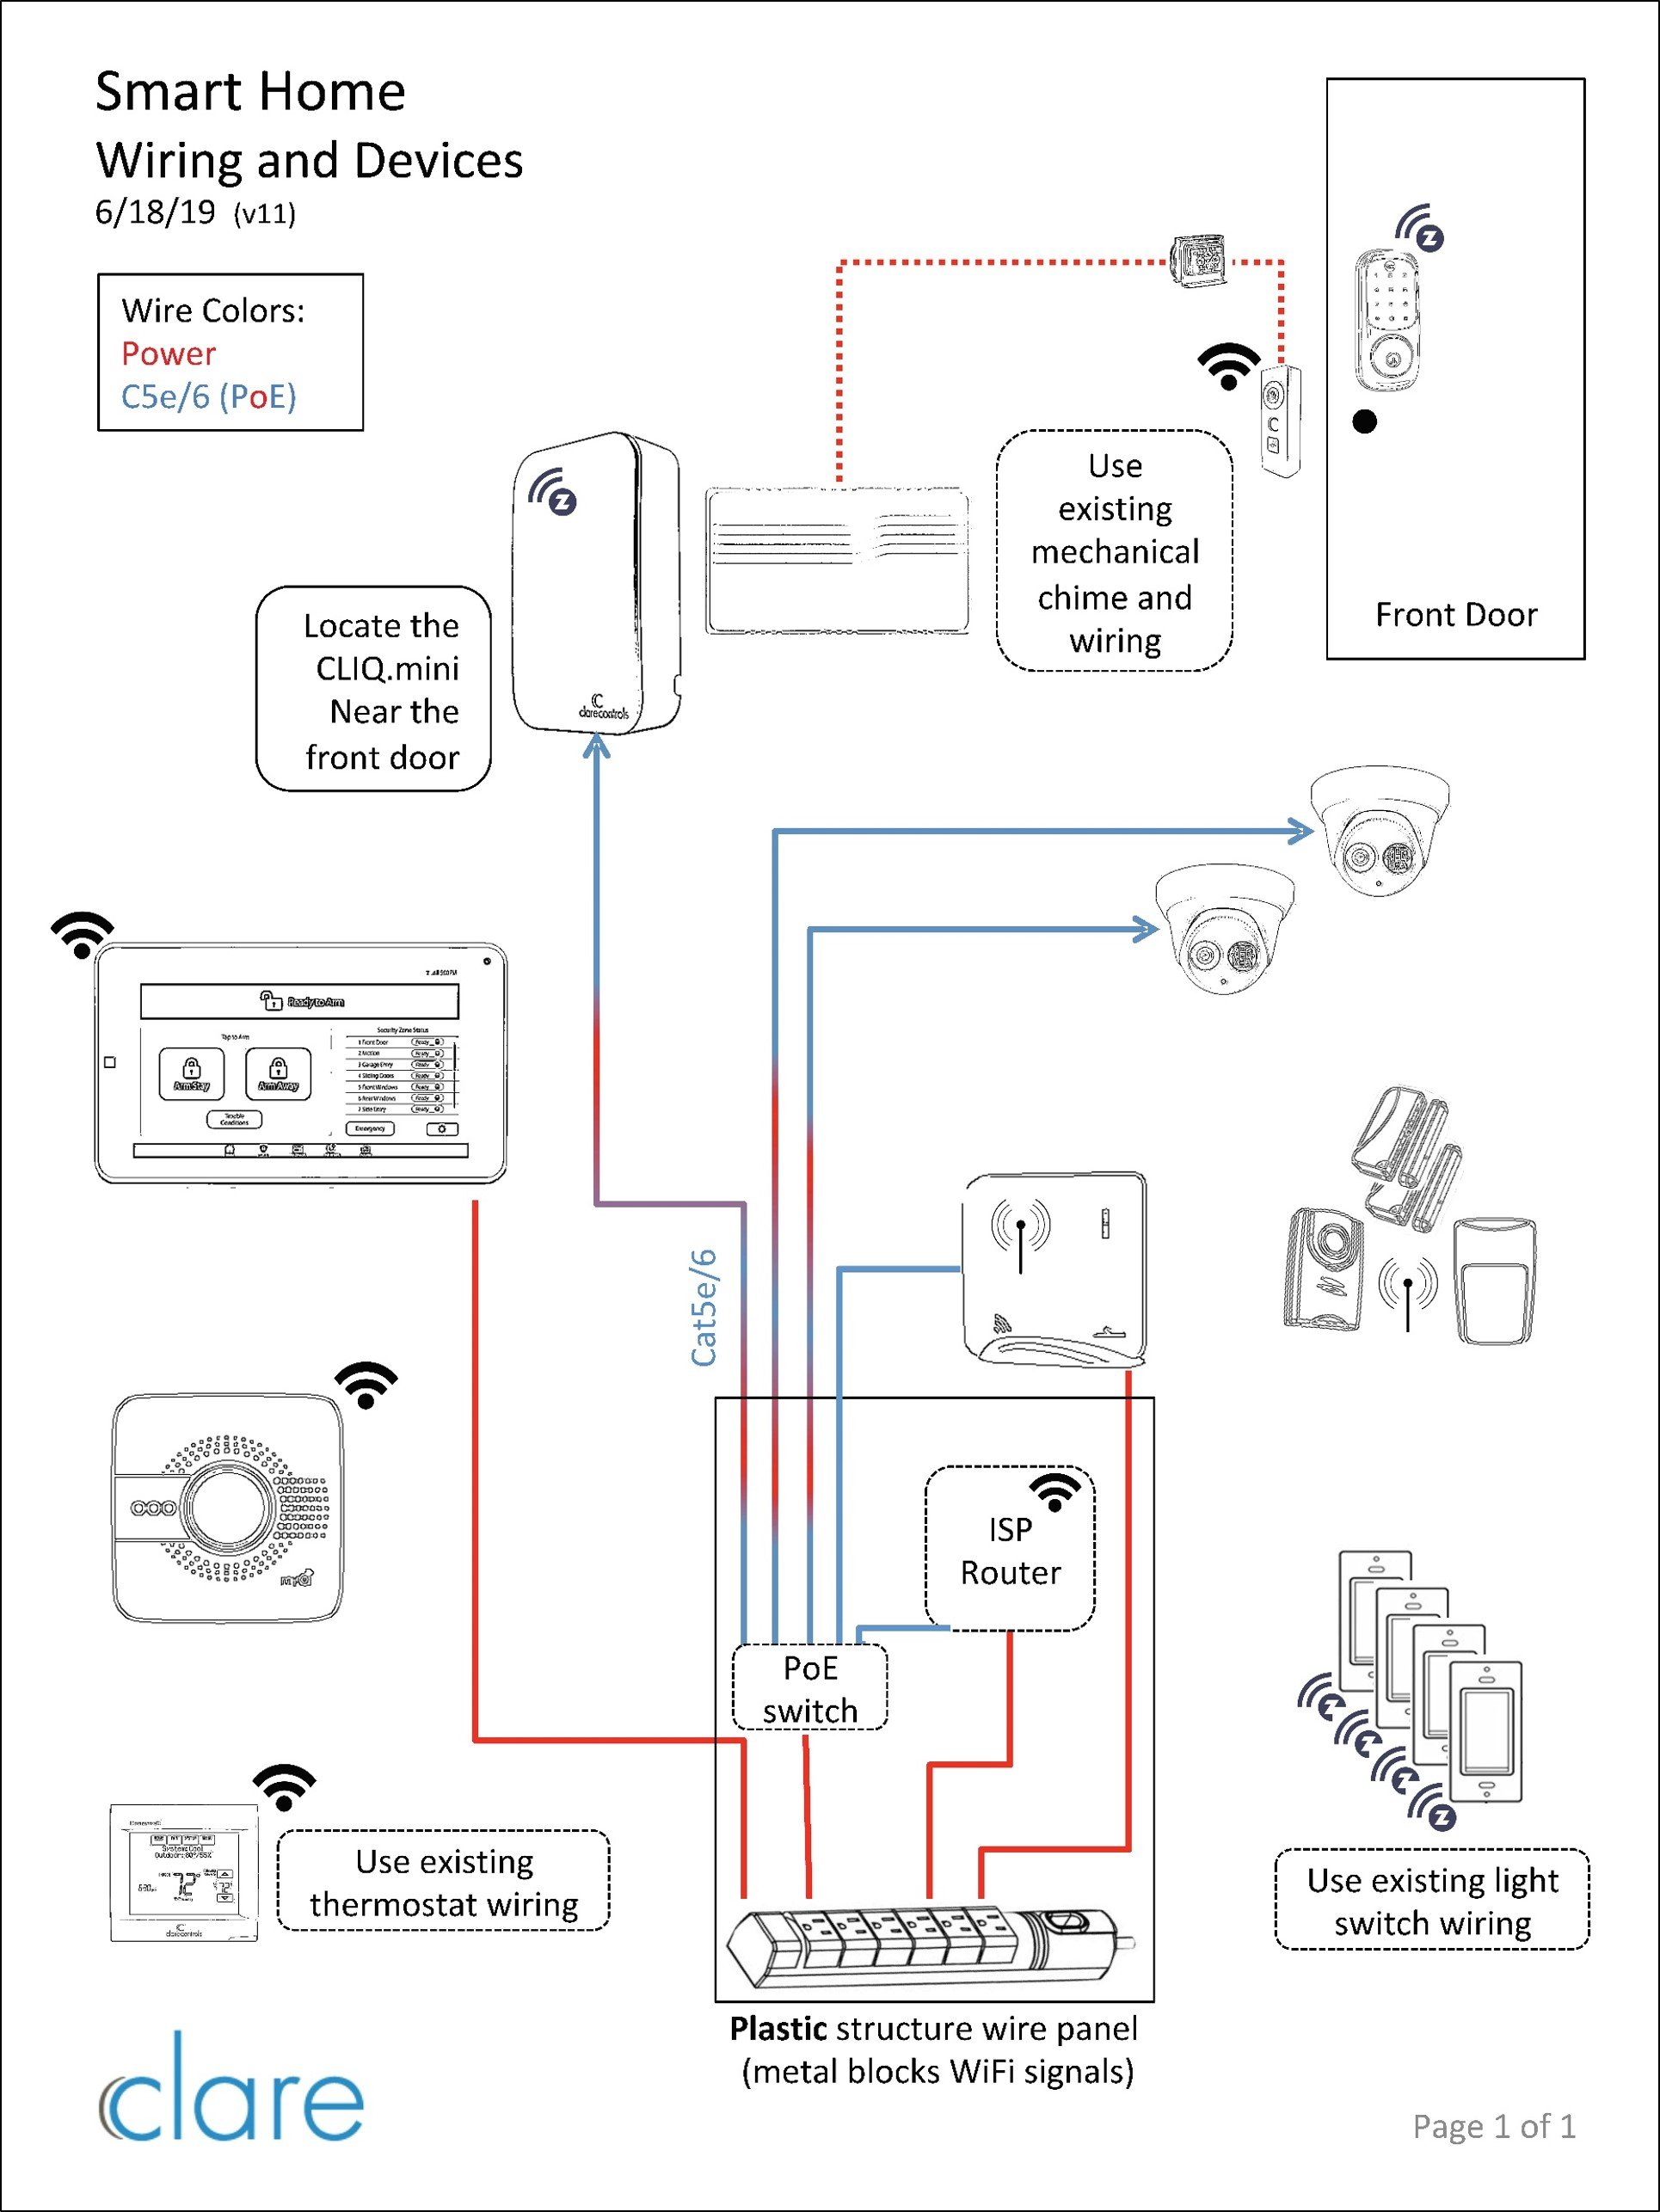 Wiring Diagram For Smart Home | Wiring Liry on